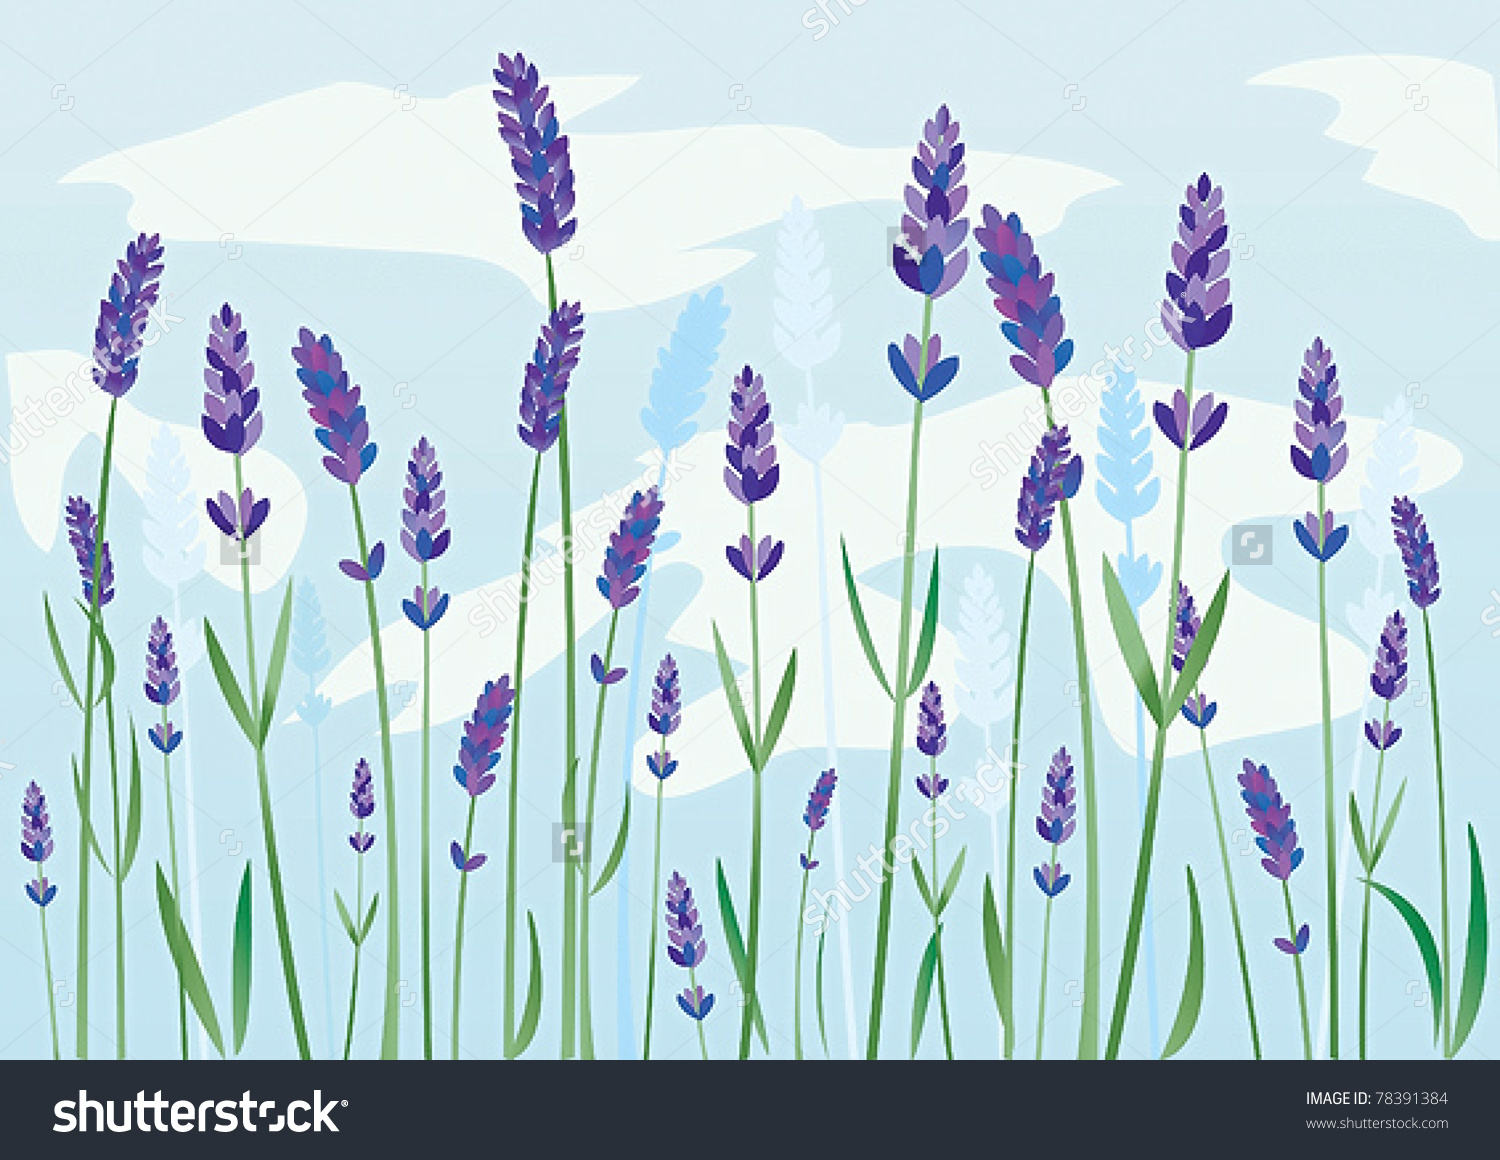 Lavender Field Stock Vector Illustration 78391384 : Shutterstock.